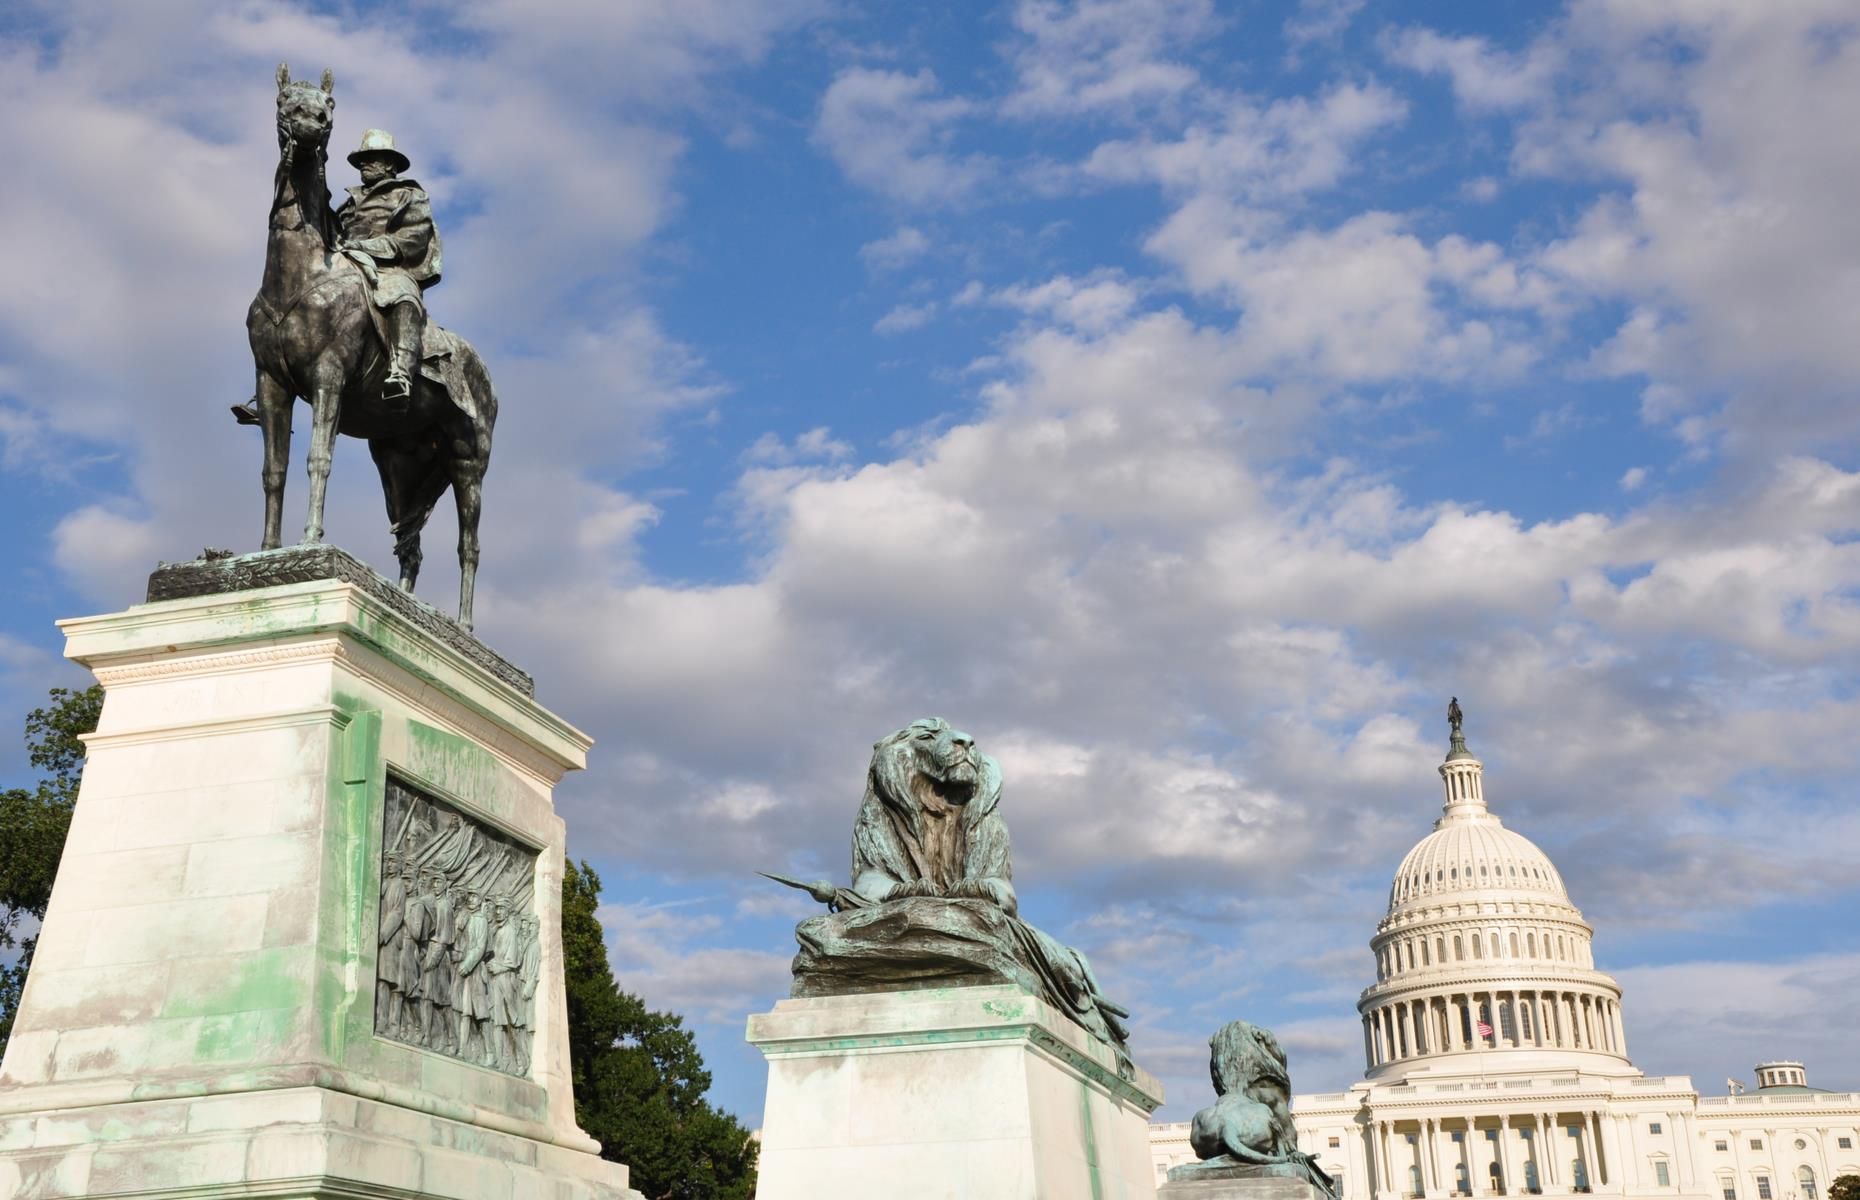 Slide 26 of 28: However, funding for this bridge was blocked and, instead, the simpler Arlington Memorial Bridge was completed at the site in 1932. A memorial to General Ulysses S. Grant (pictured) now stands at the foot of Washington DC's Capitol Hill.